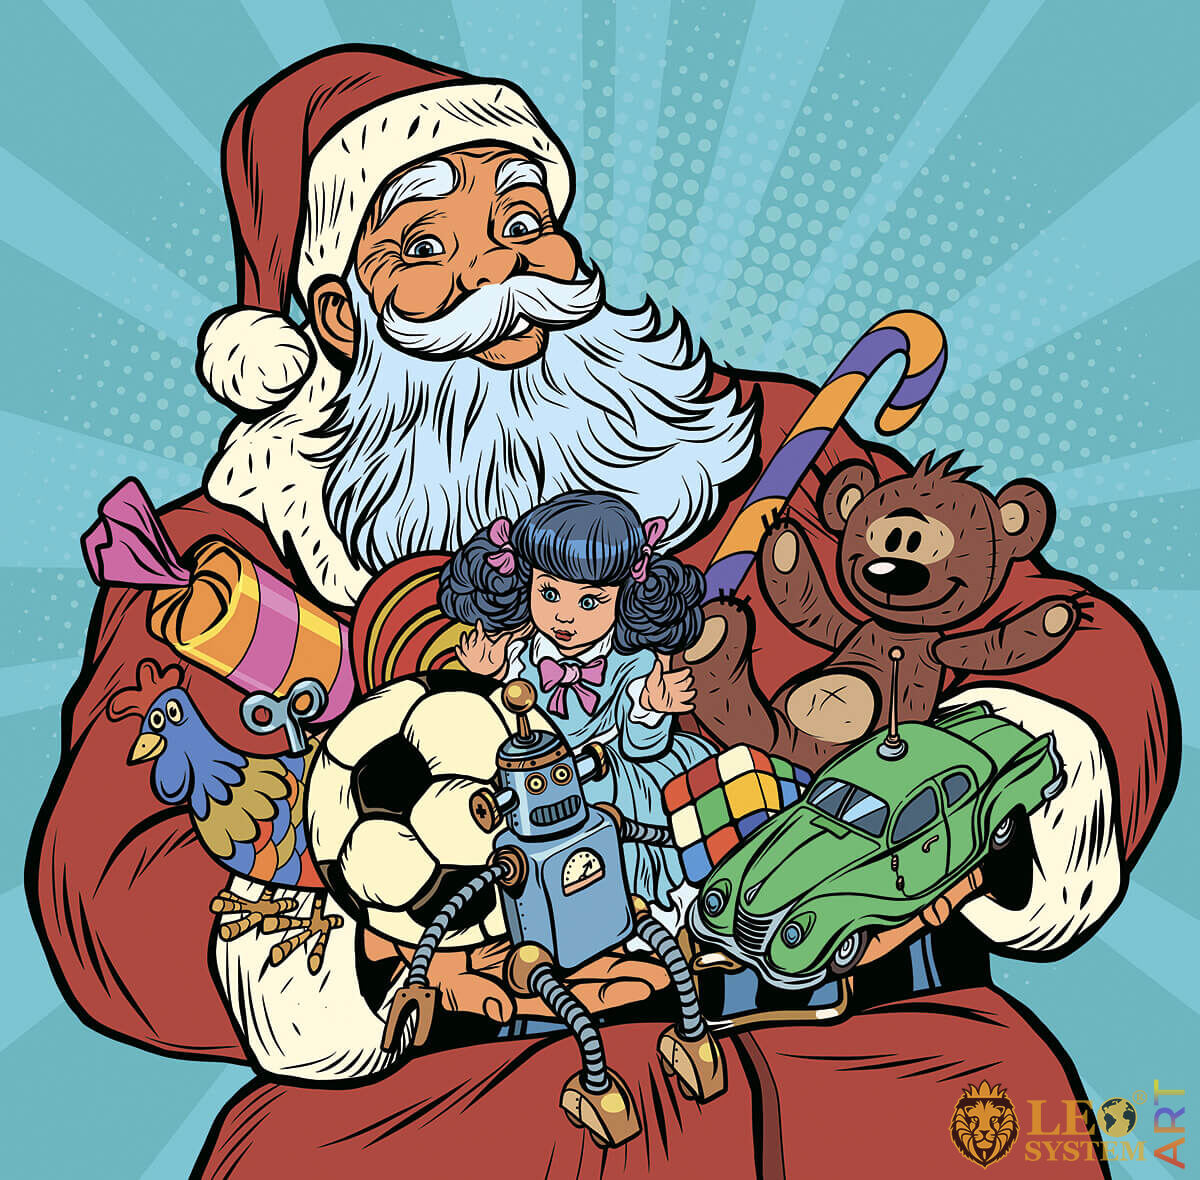 Cute Santa Claus with many gifts in his hands